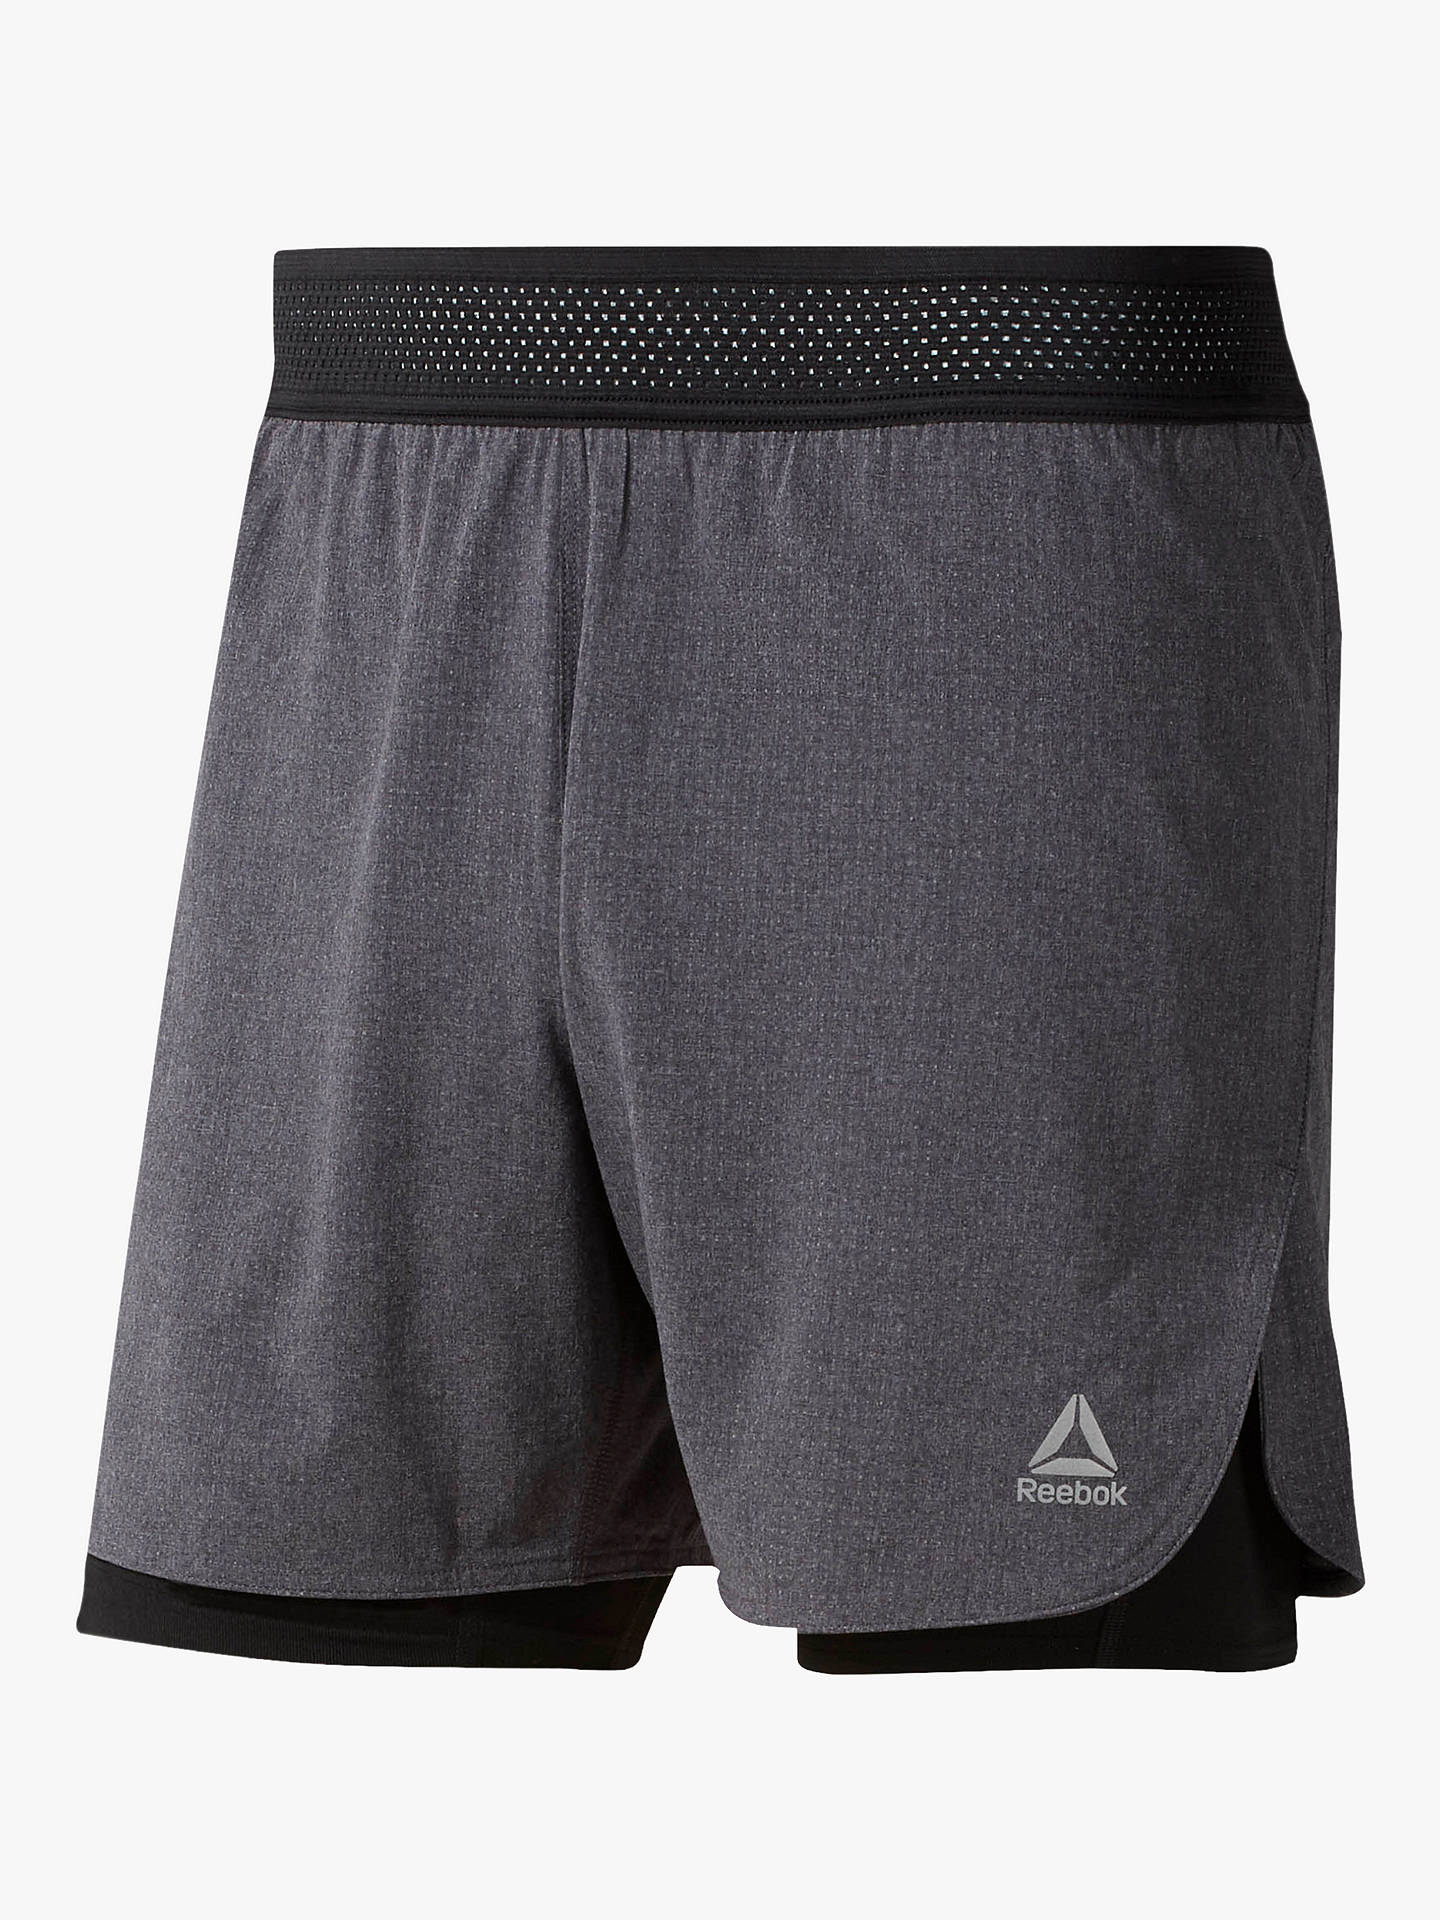 premium selection a9ca9 8638f Buy Reebok One Series Running Epic 2-in-1 Running Shorts, Black, ...